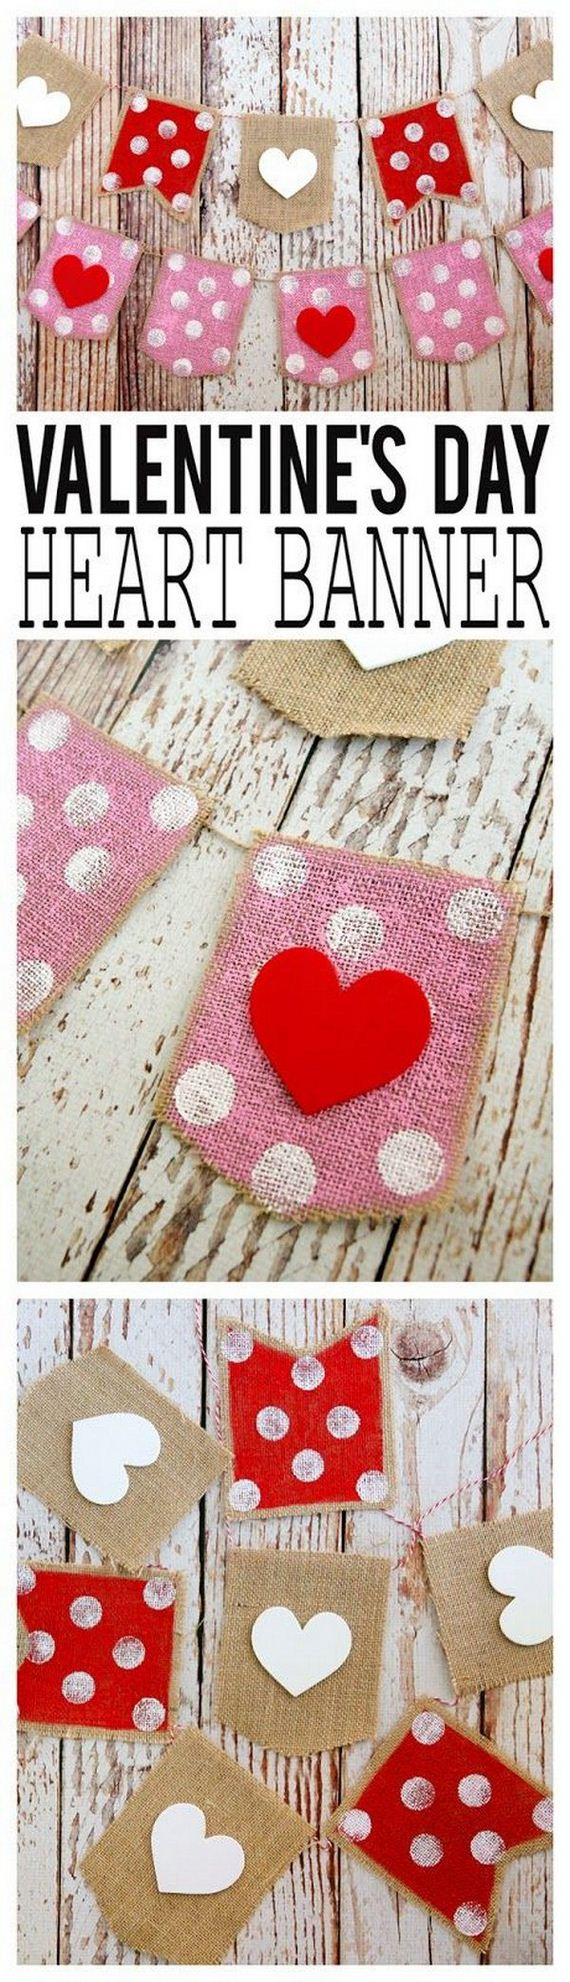 05-valentines-day-ideas